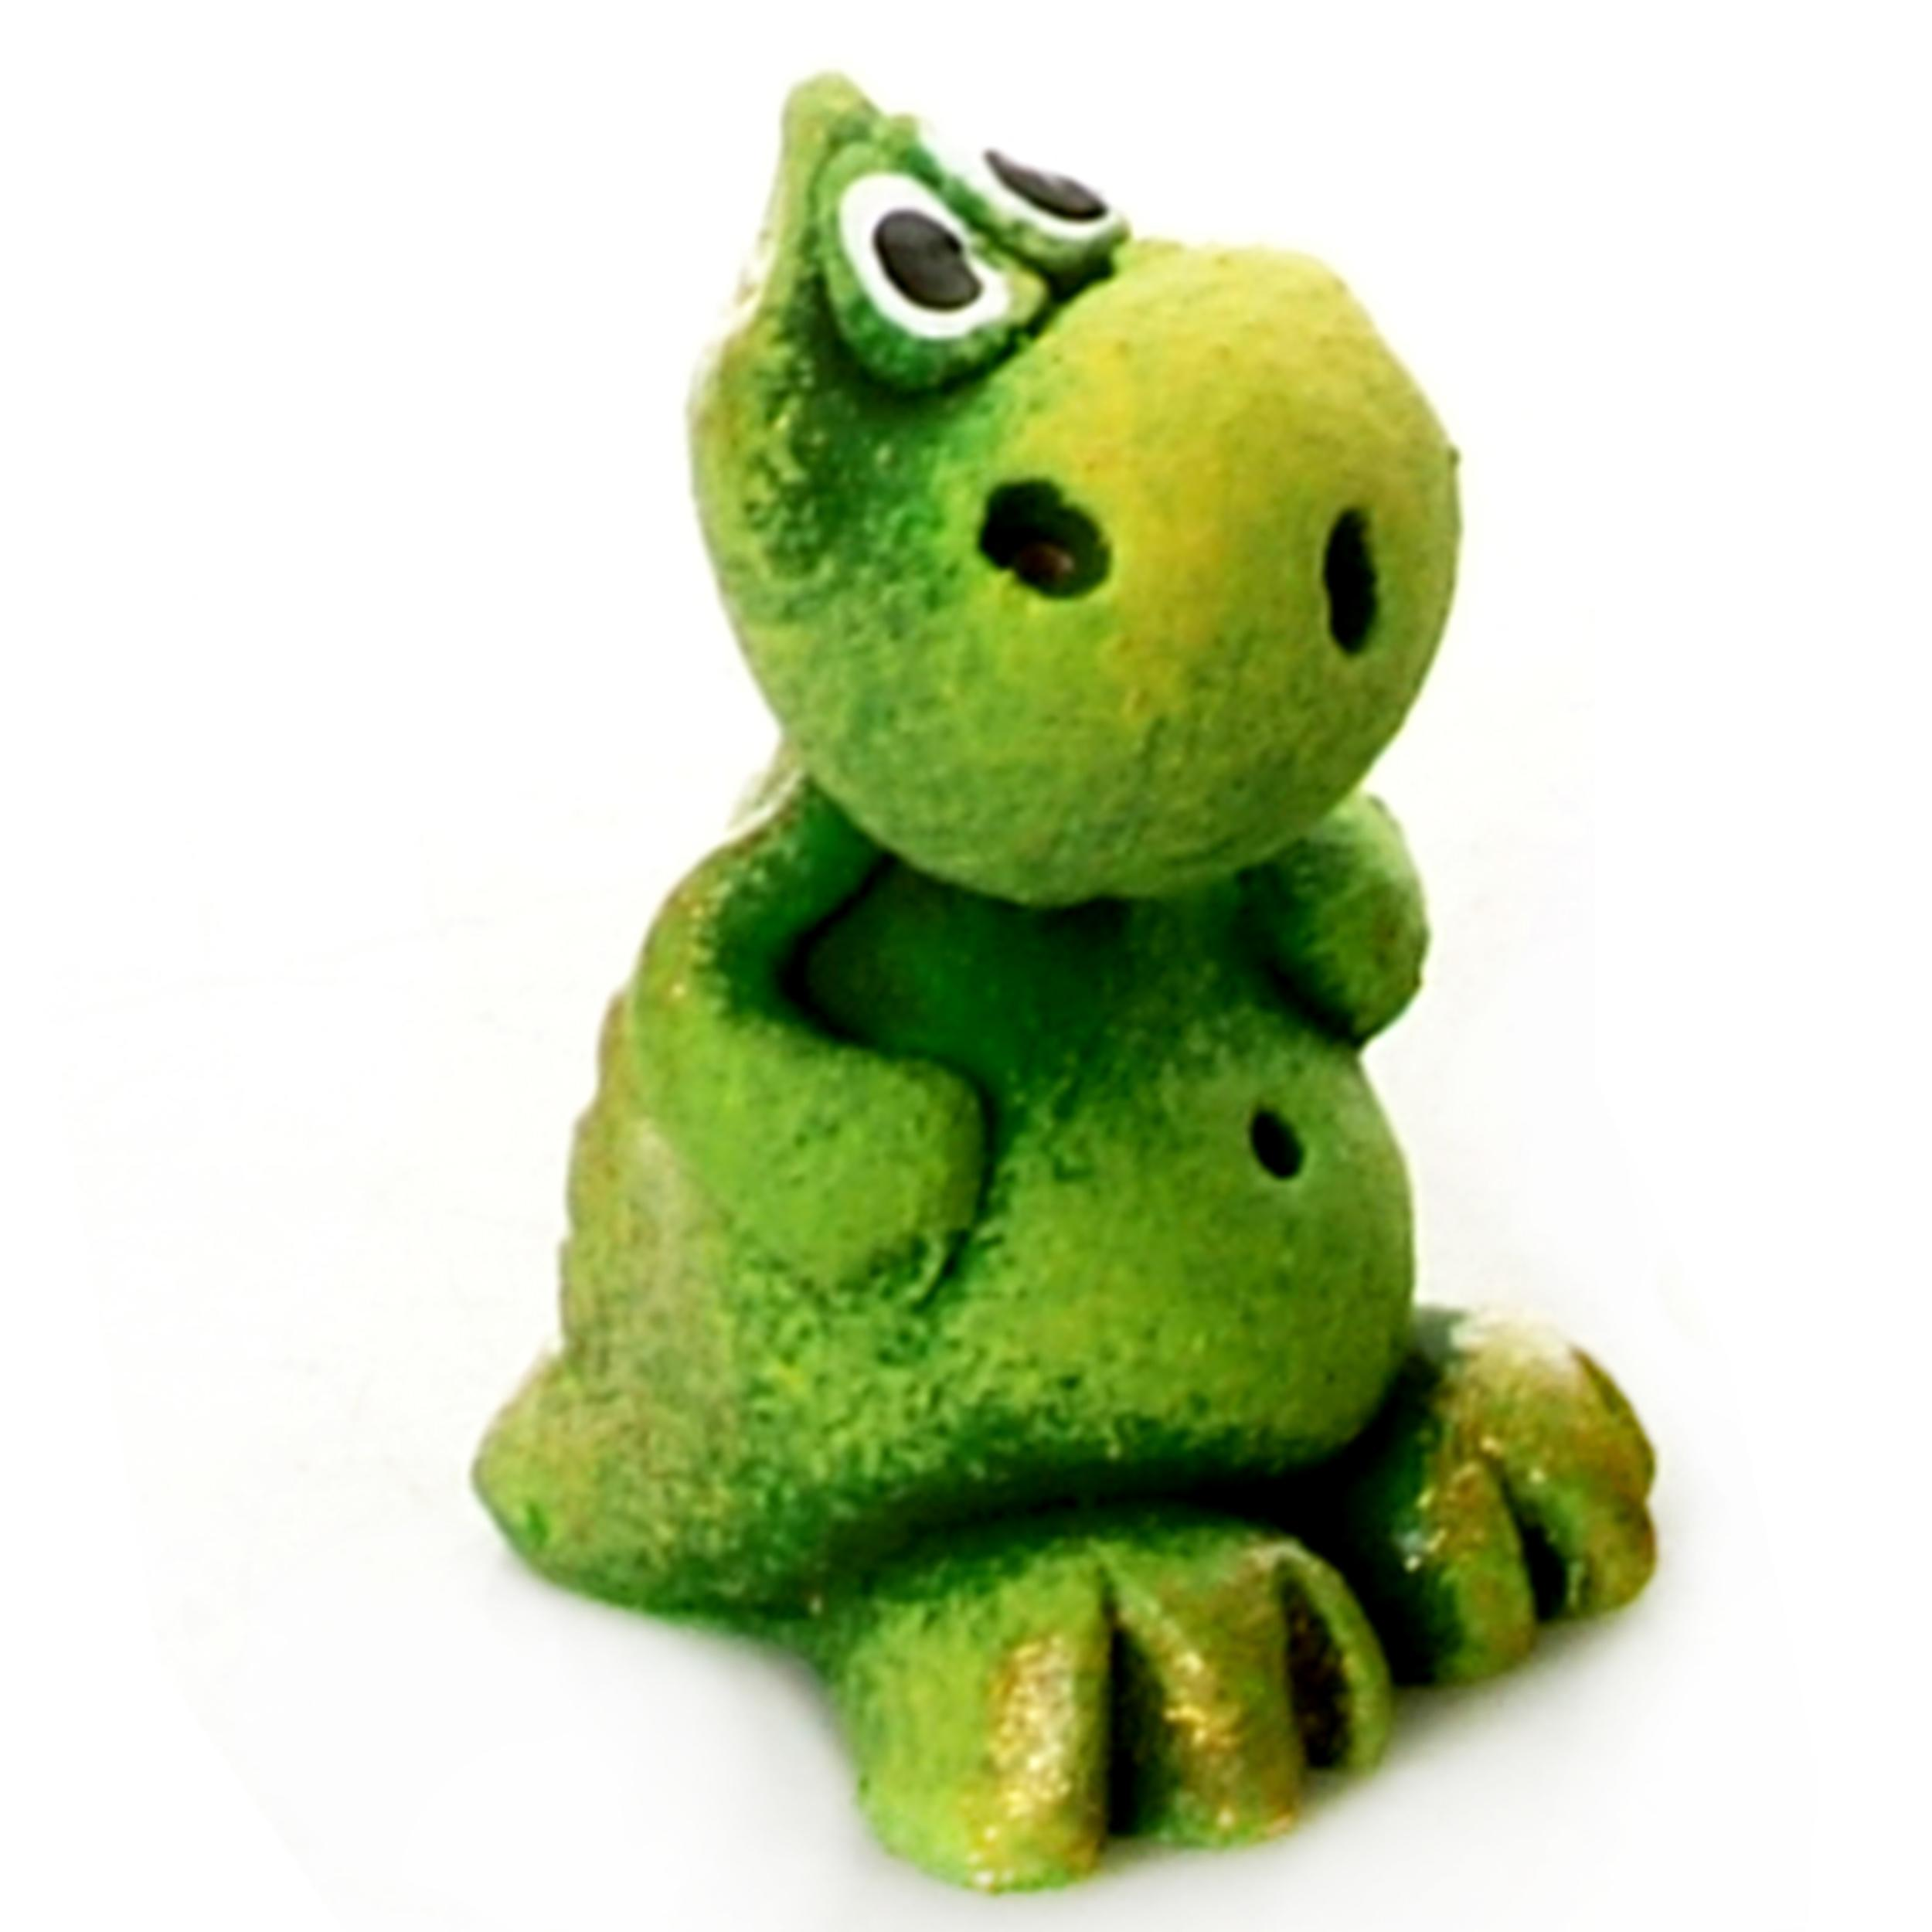 Pet in a Box | Ceramic Animal Gift for Kids | Green Baby Dragon